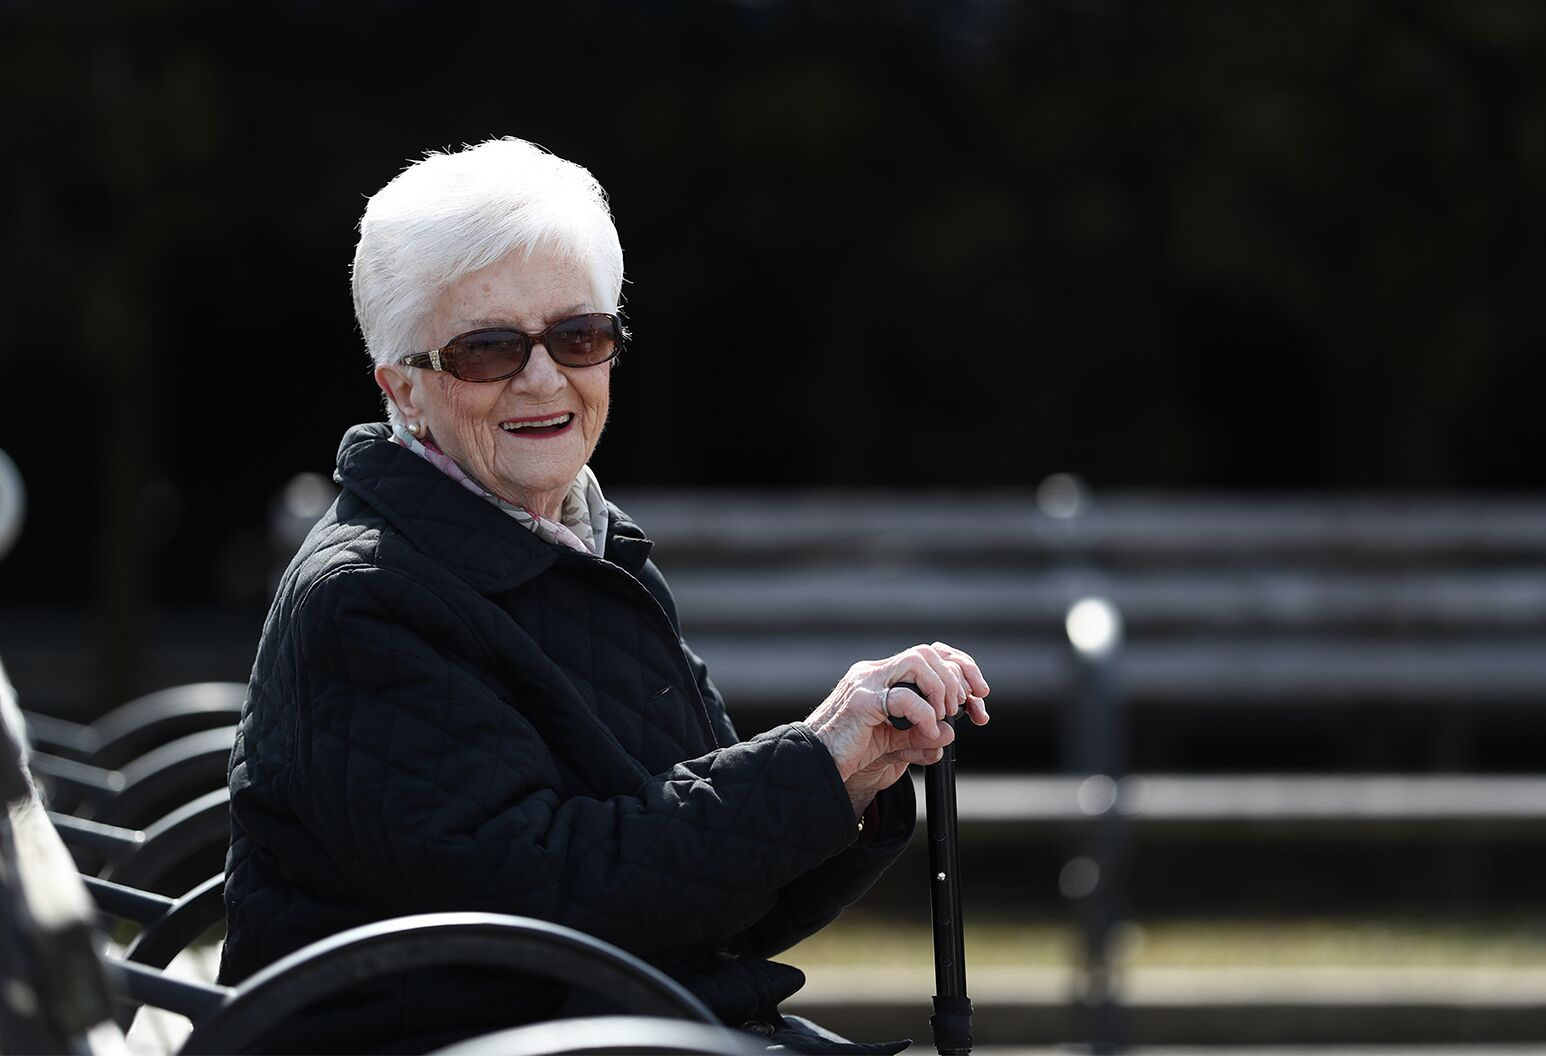 90-year-old woman wearing sunglasses sits on a bench in a park.